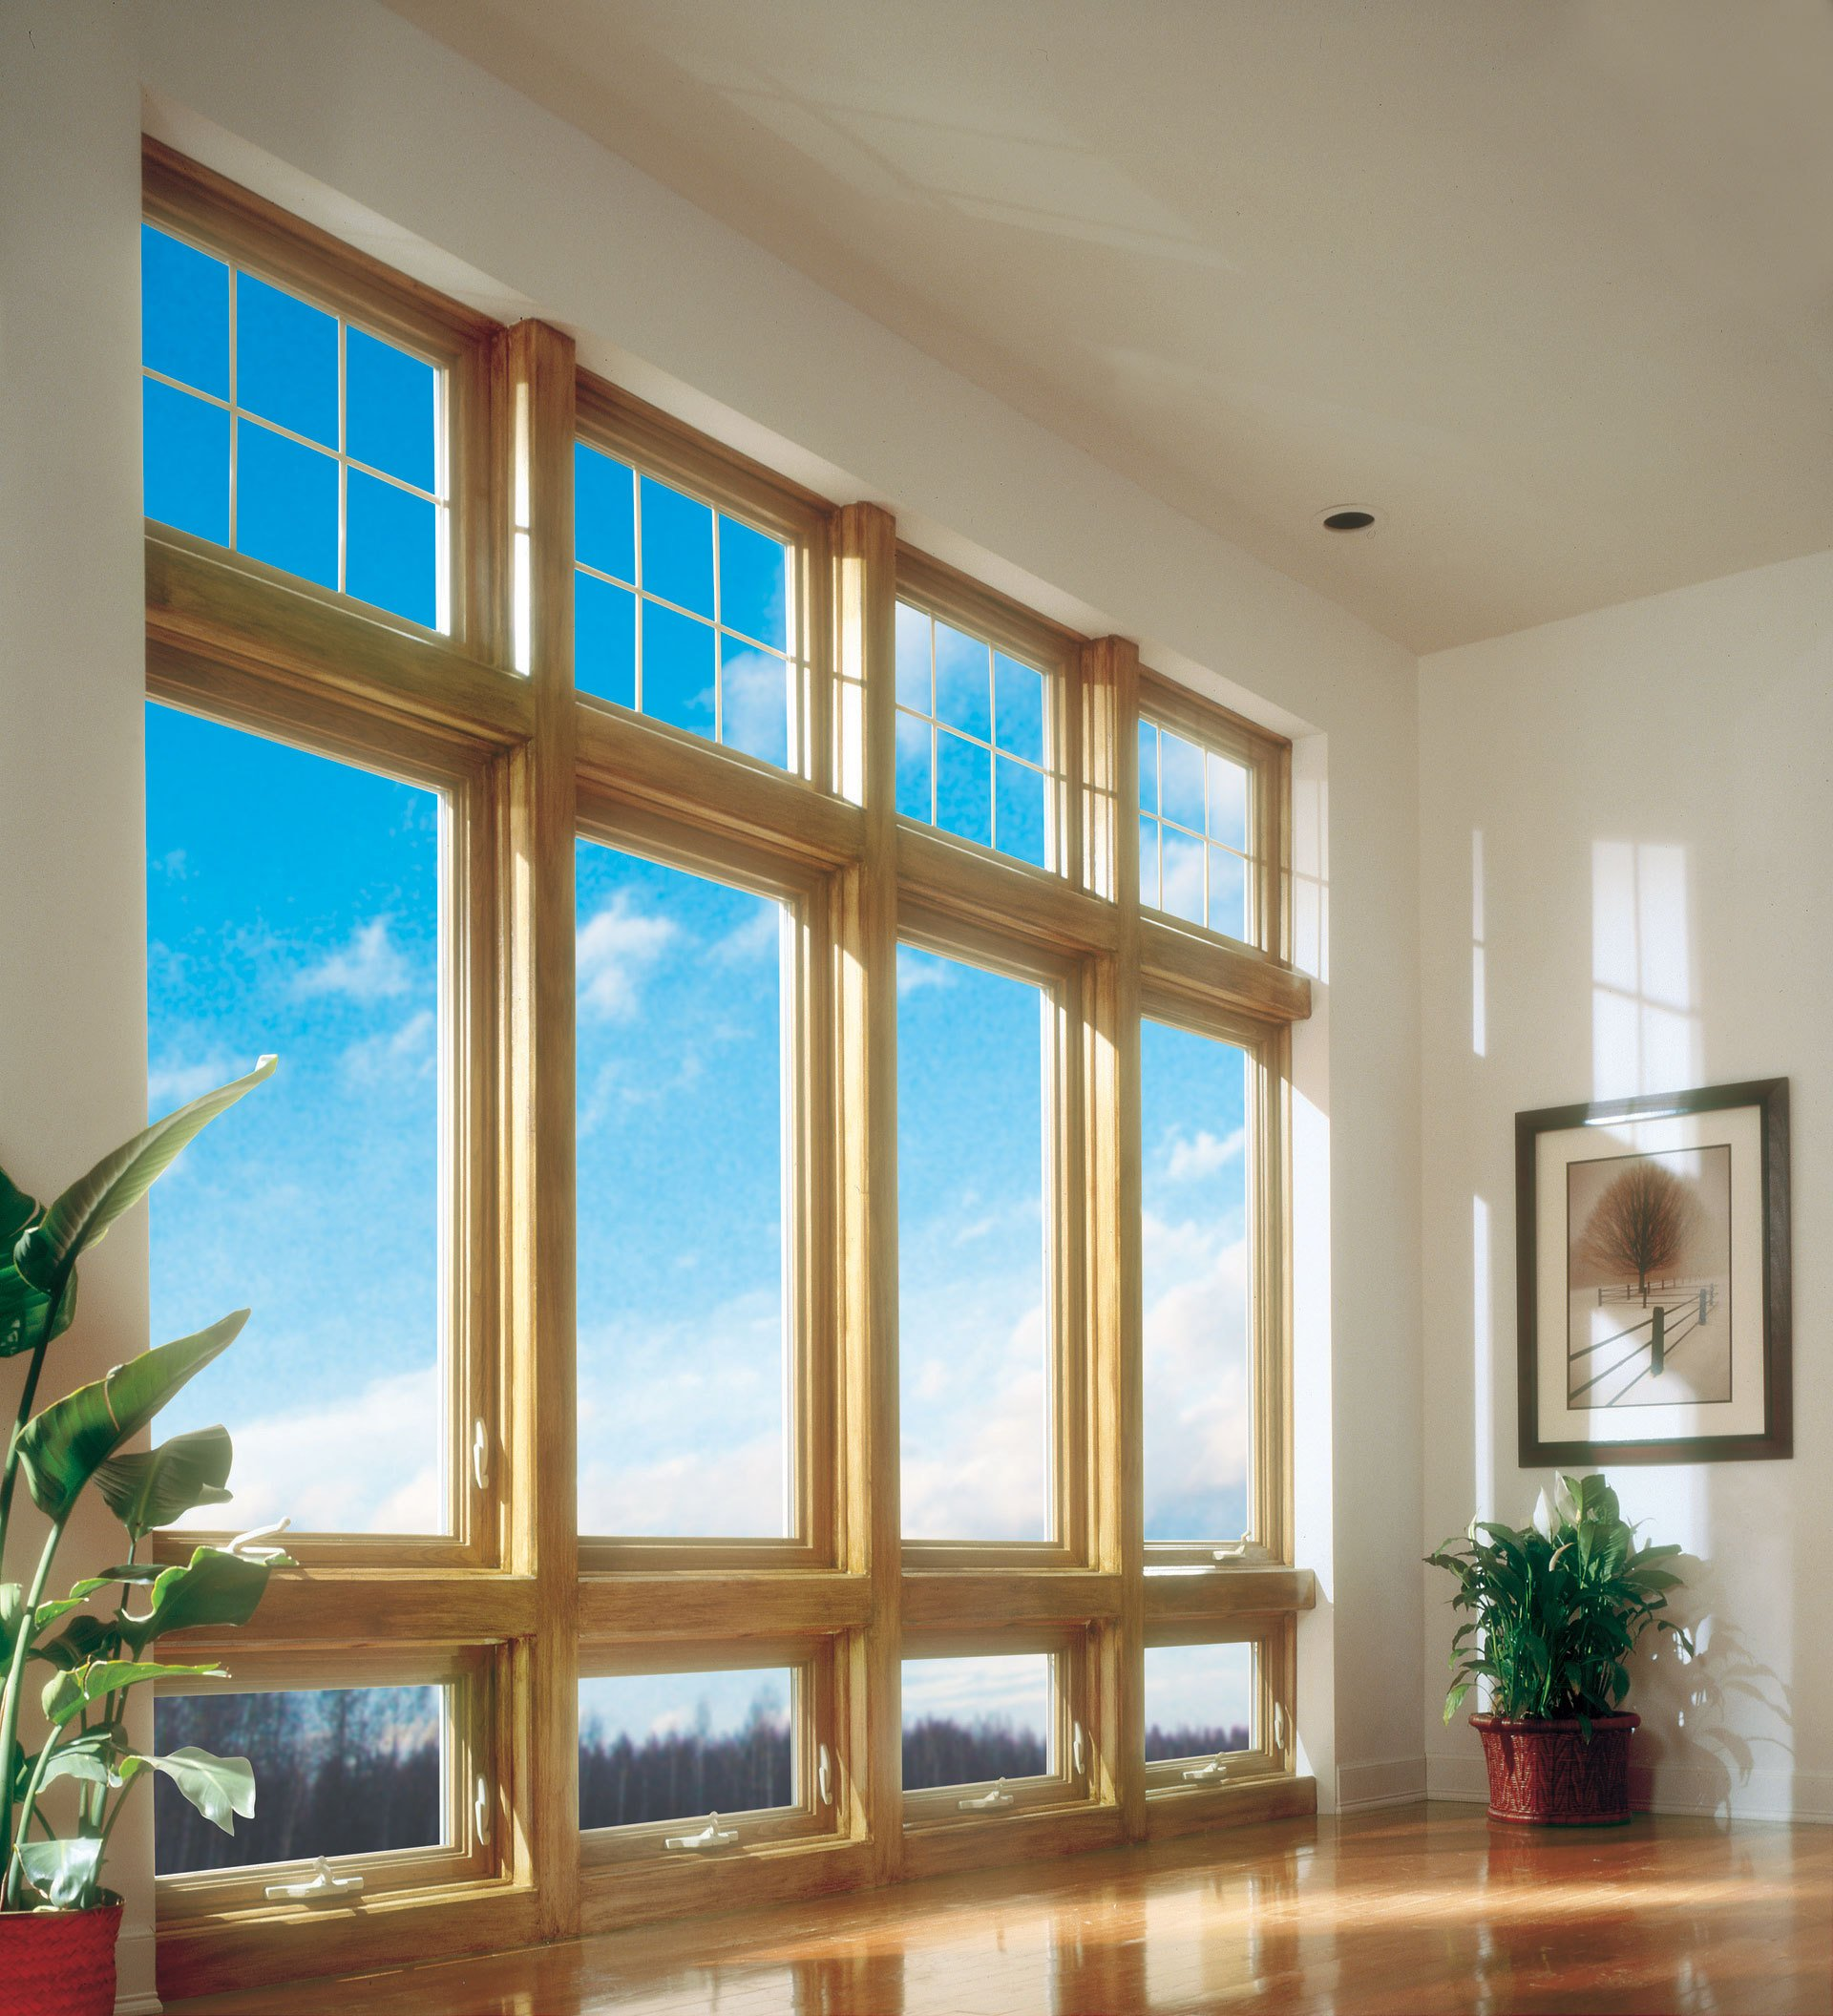 Vinyl replacement windows in cincinnati oh for Windows for houses design